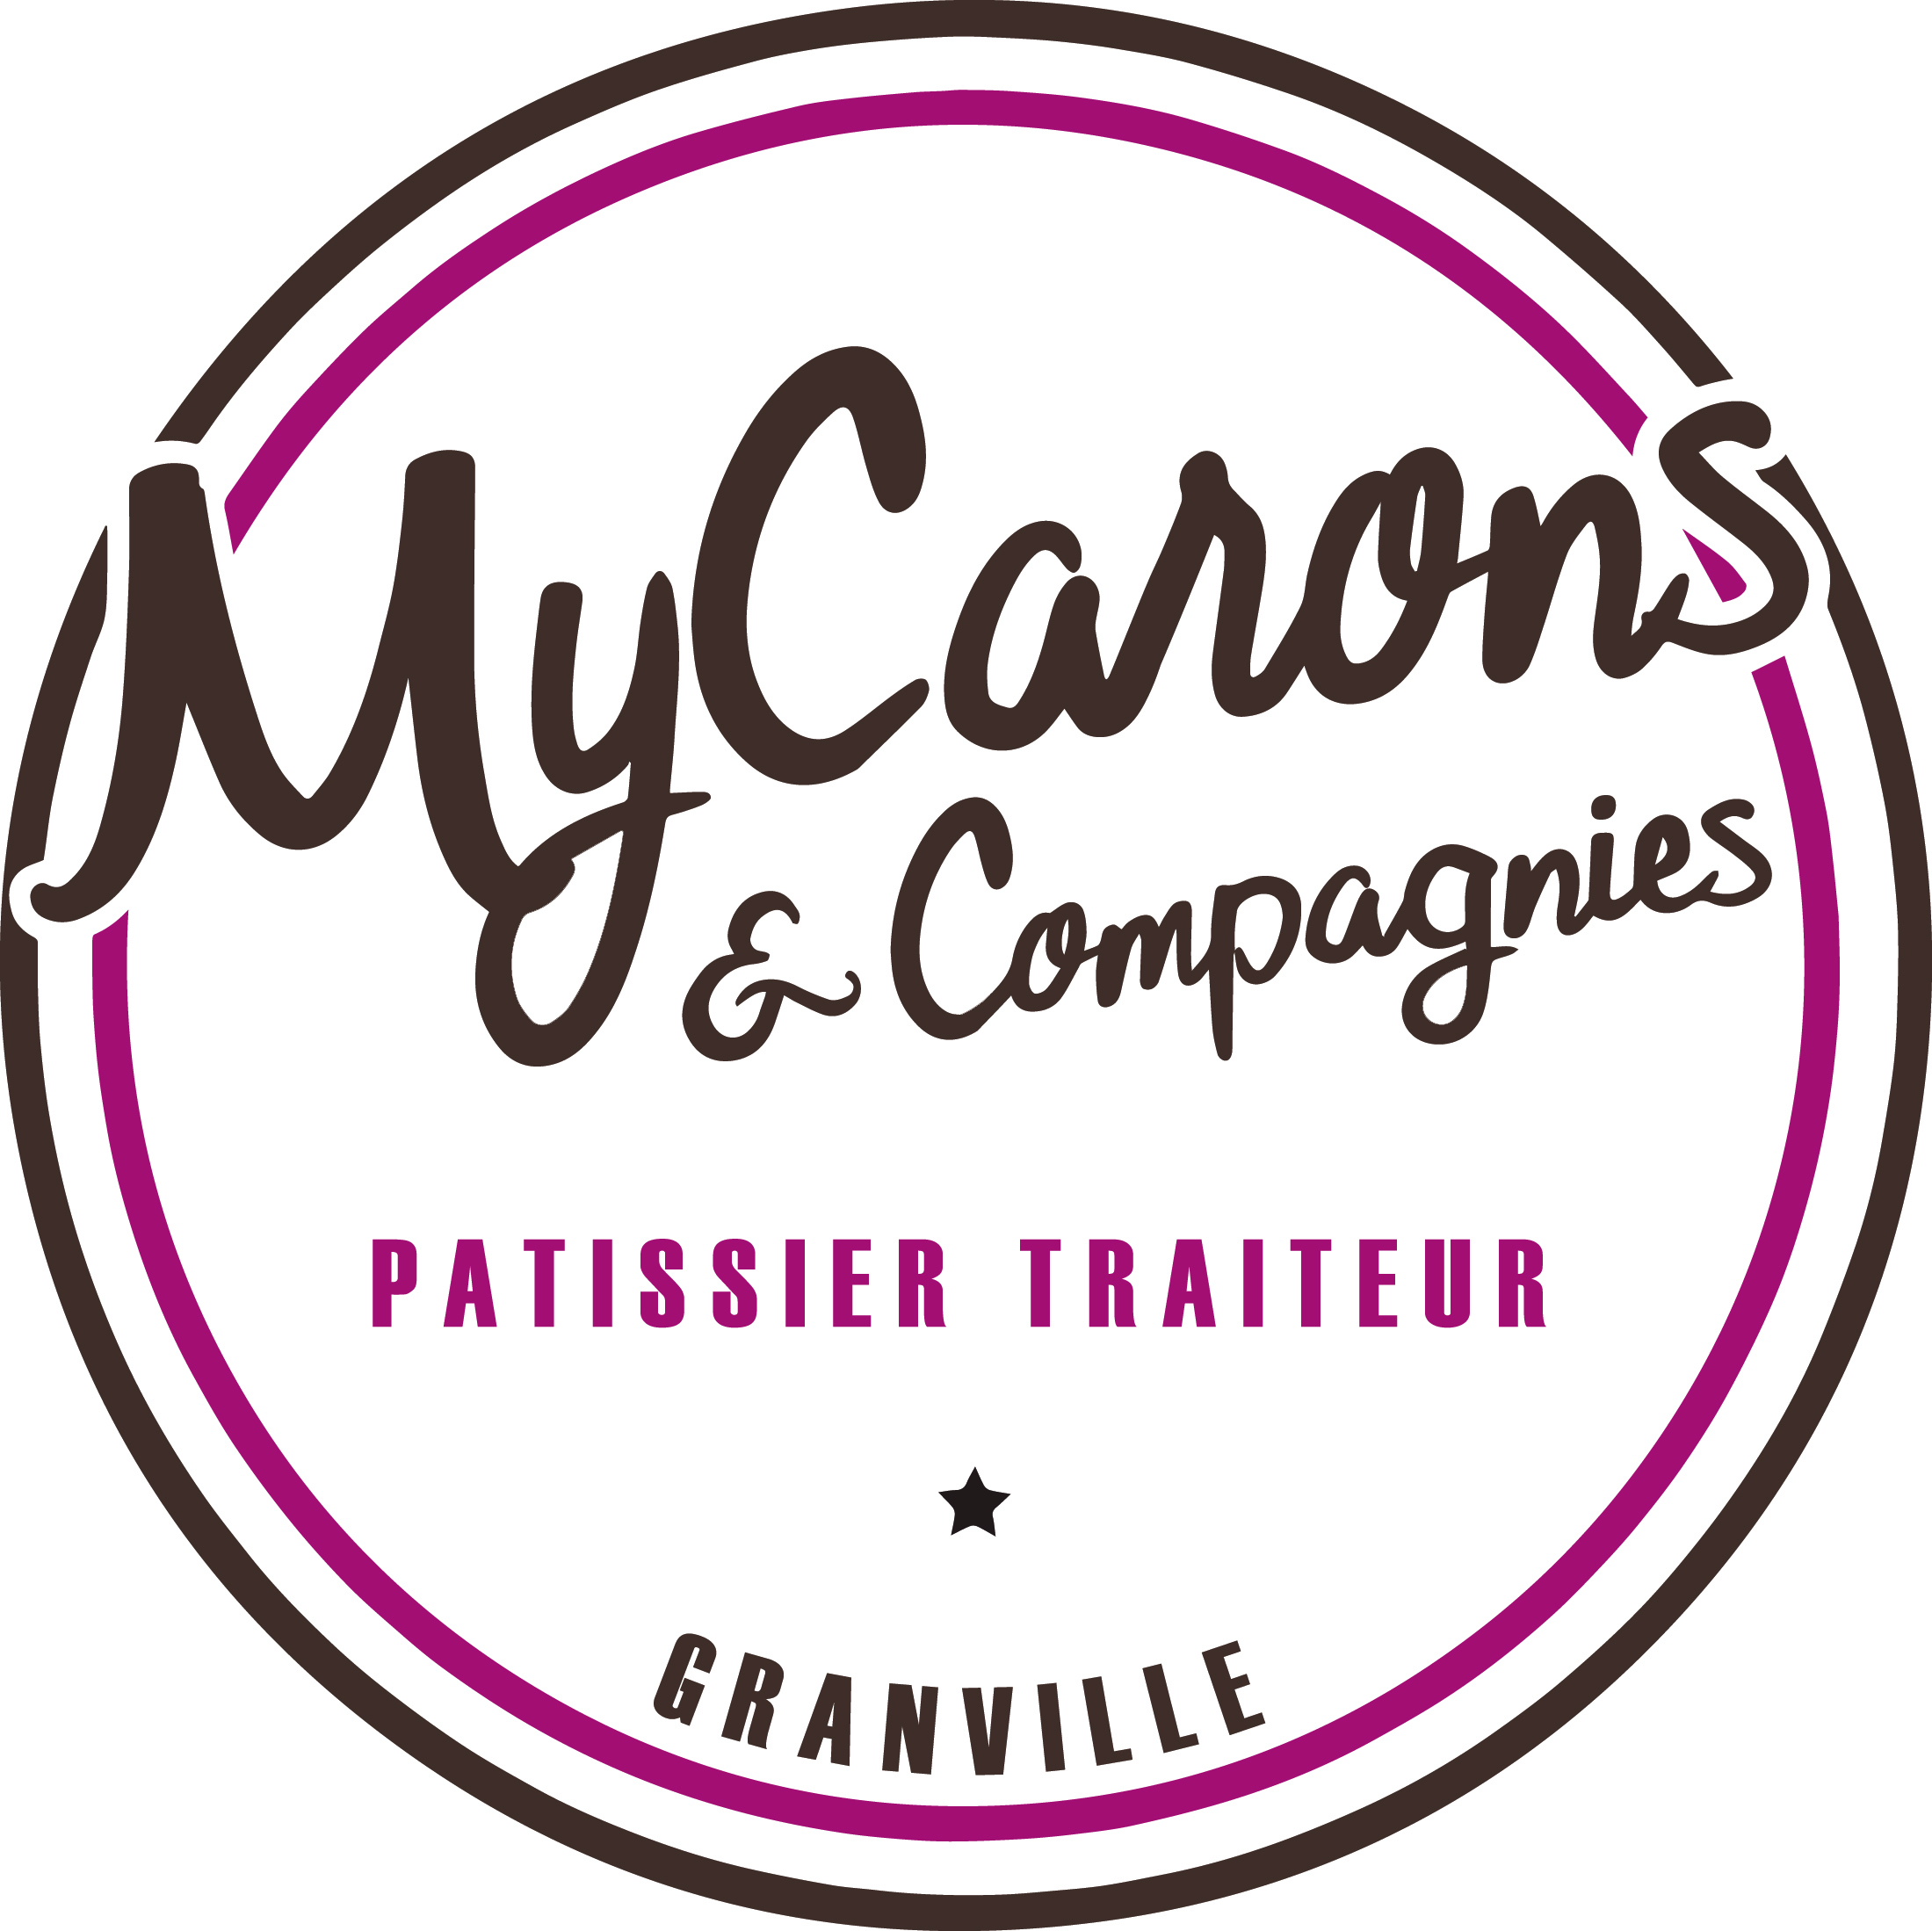 mycarons & compagnies